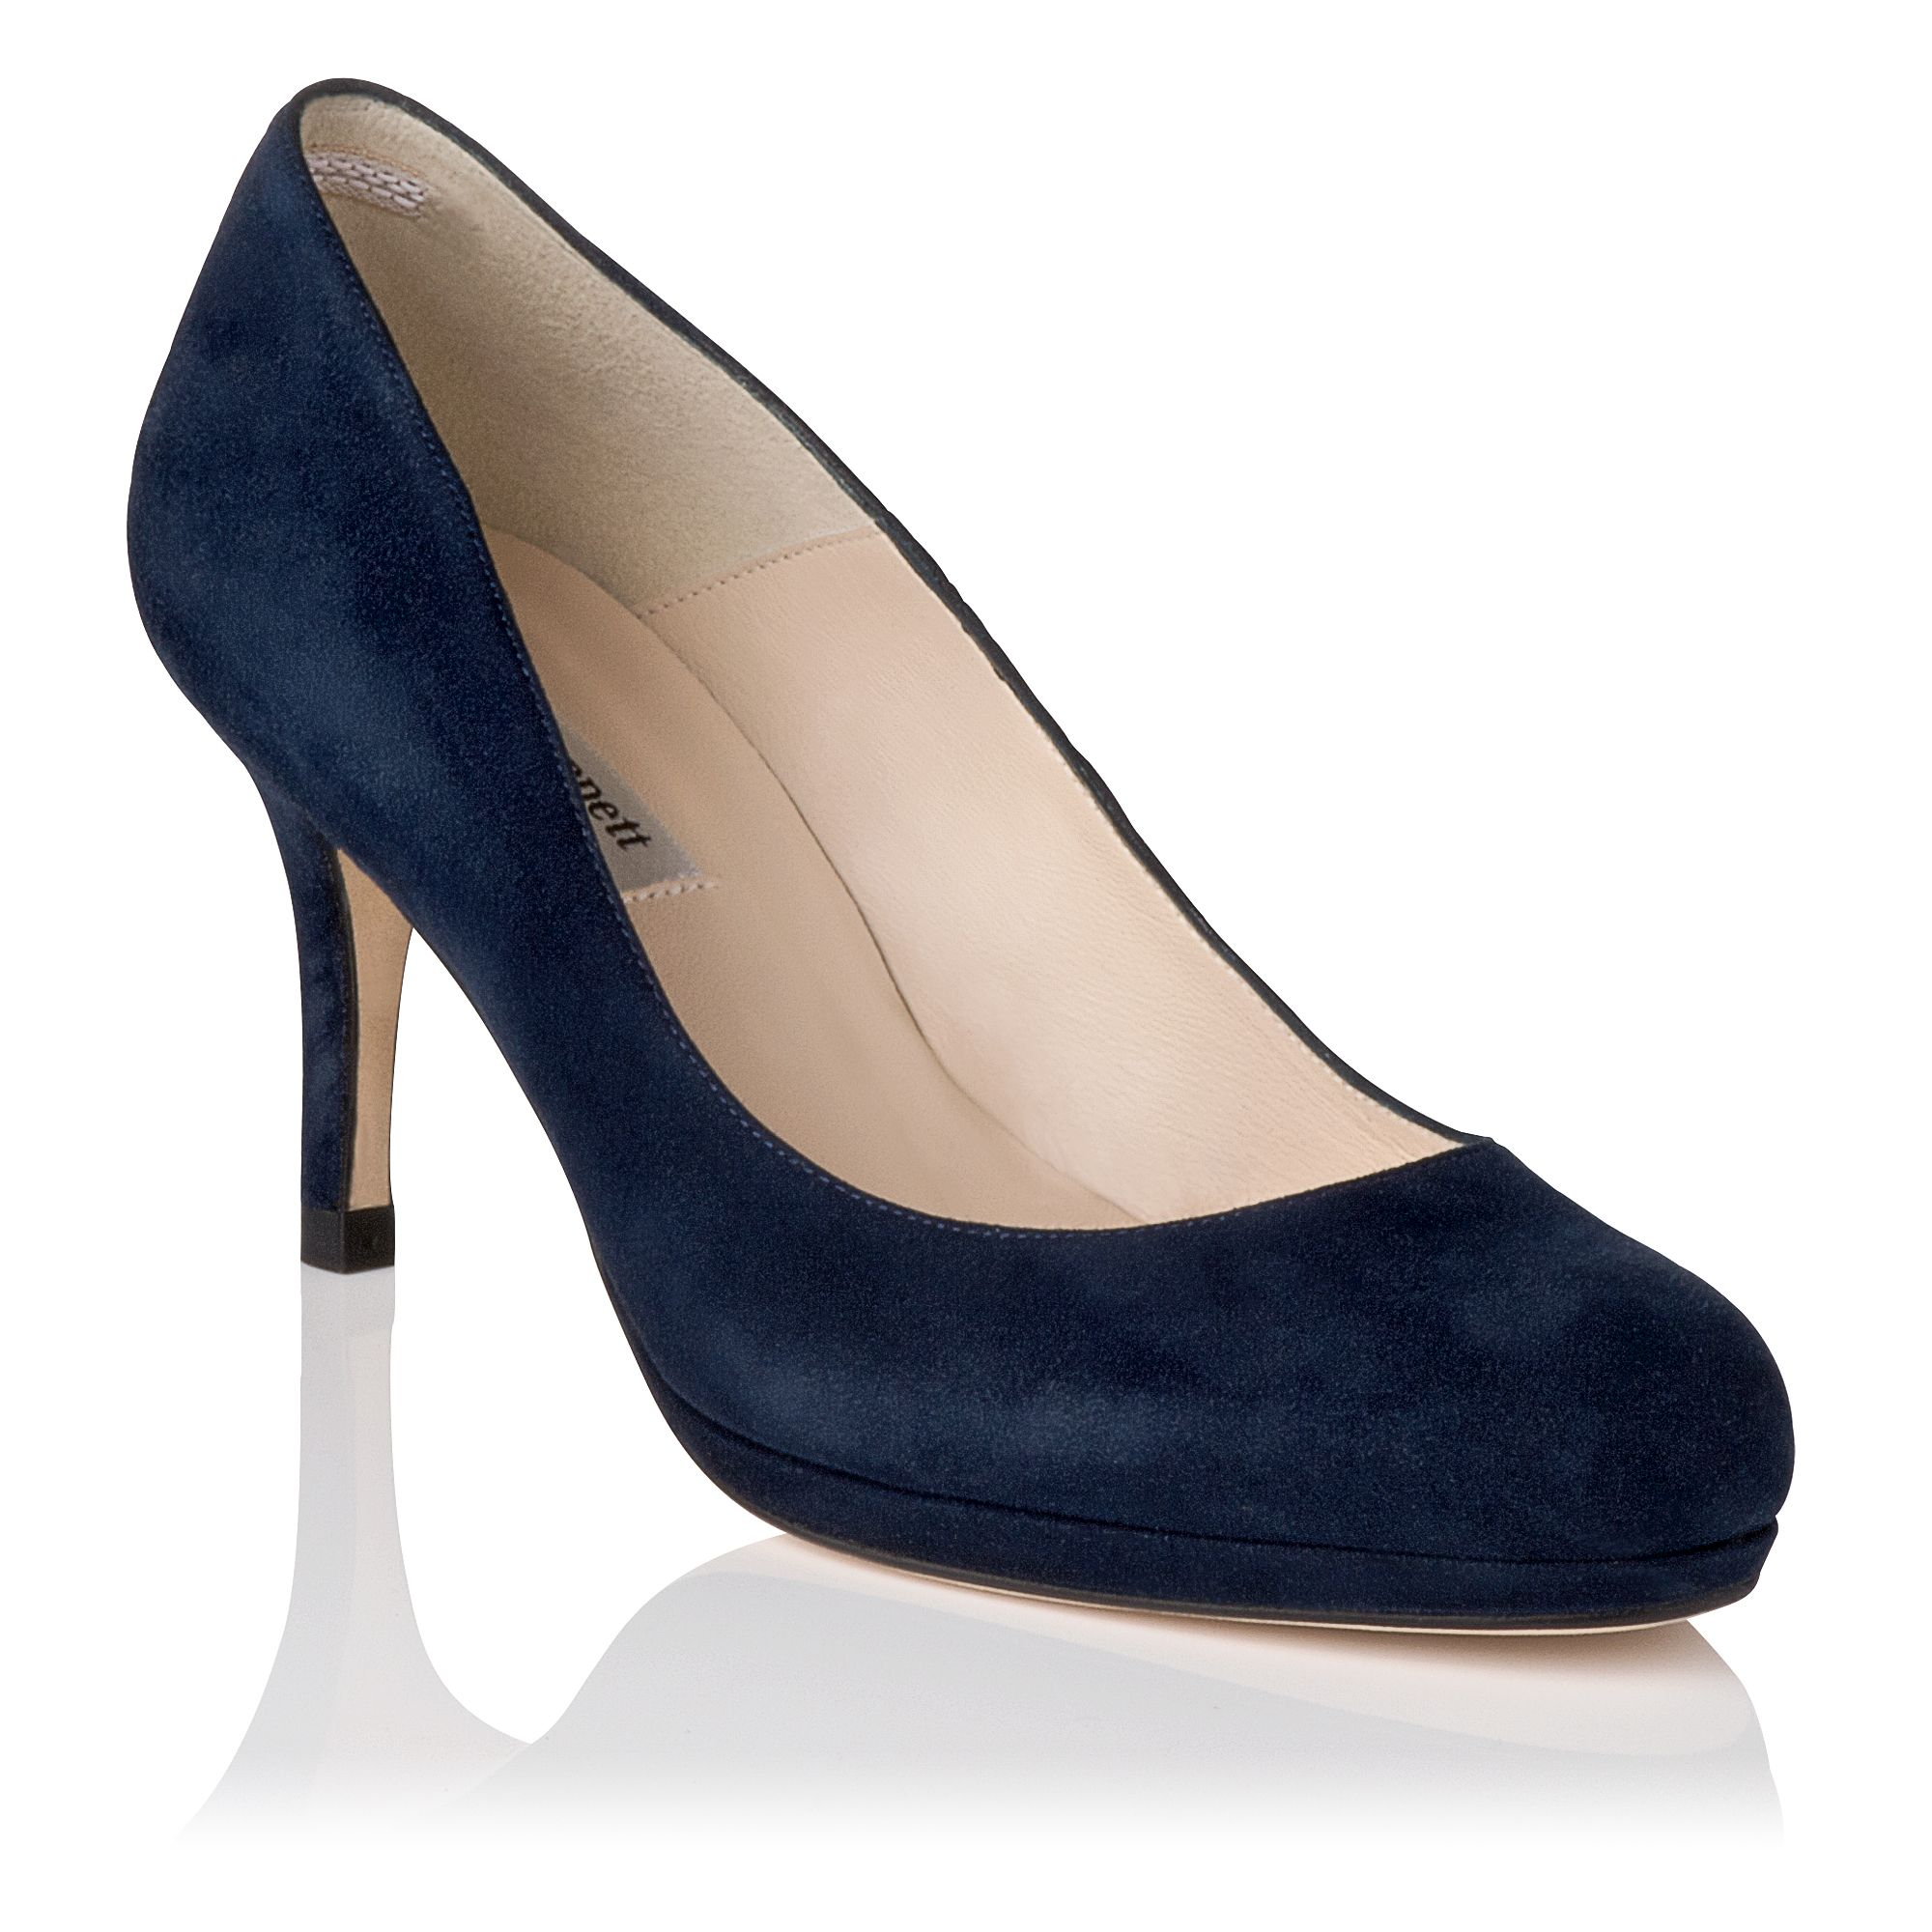 Sybila suede platform court shoes